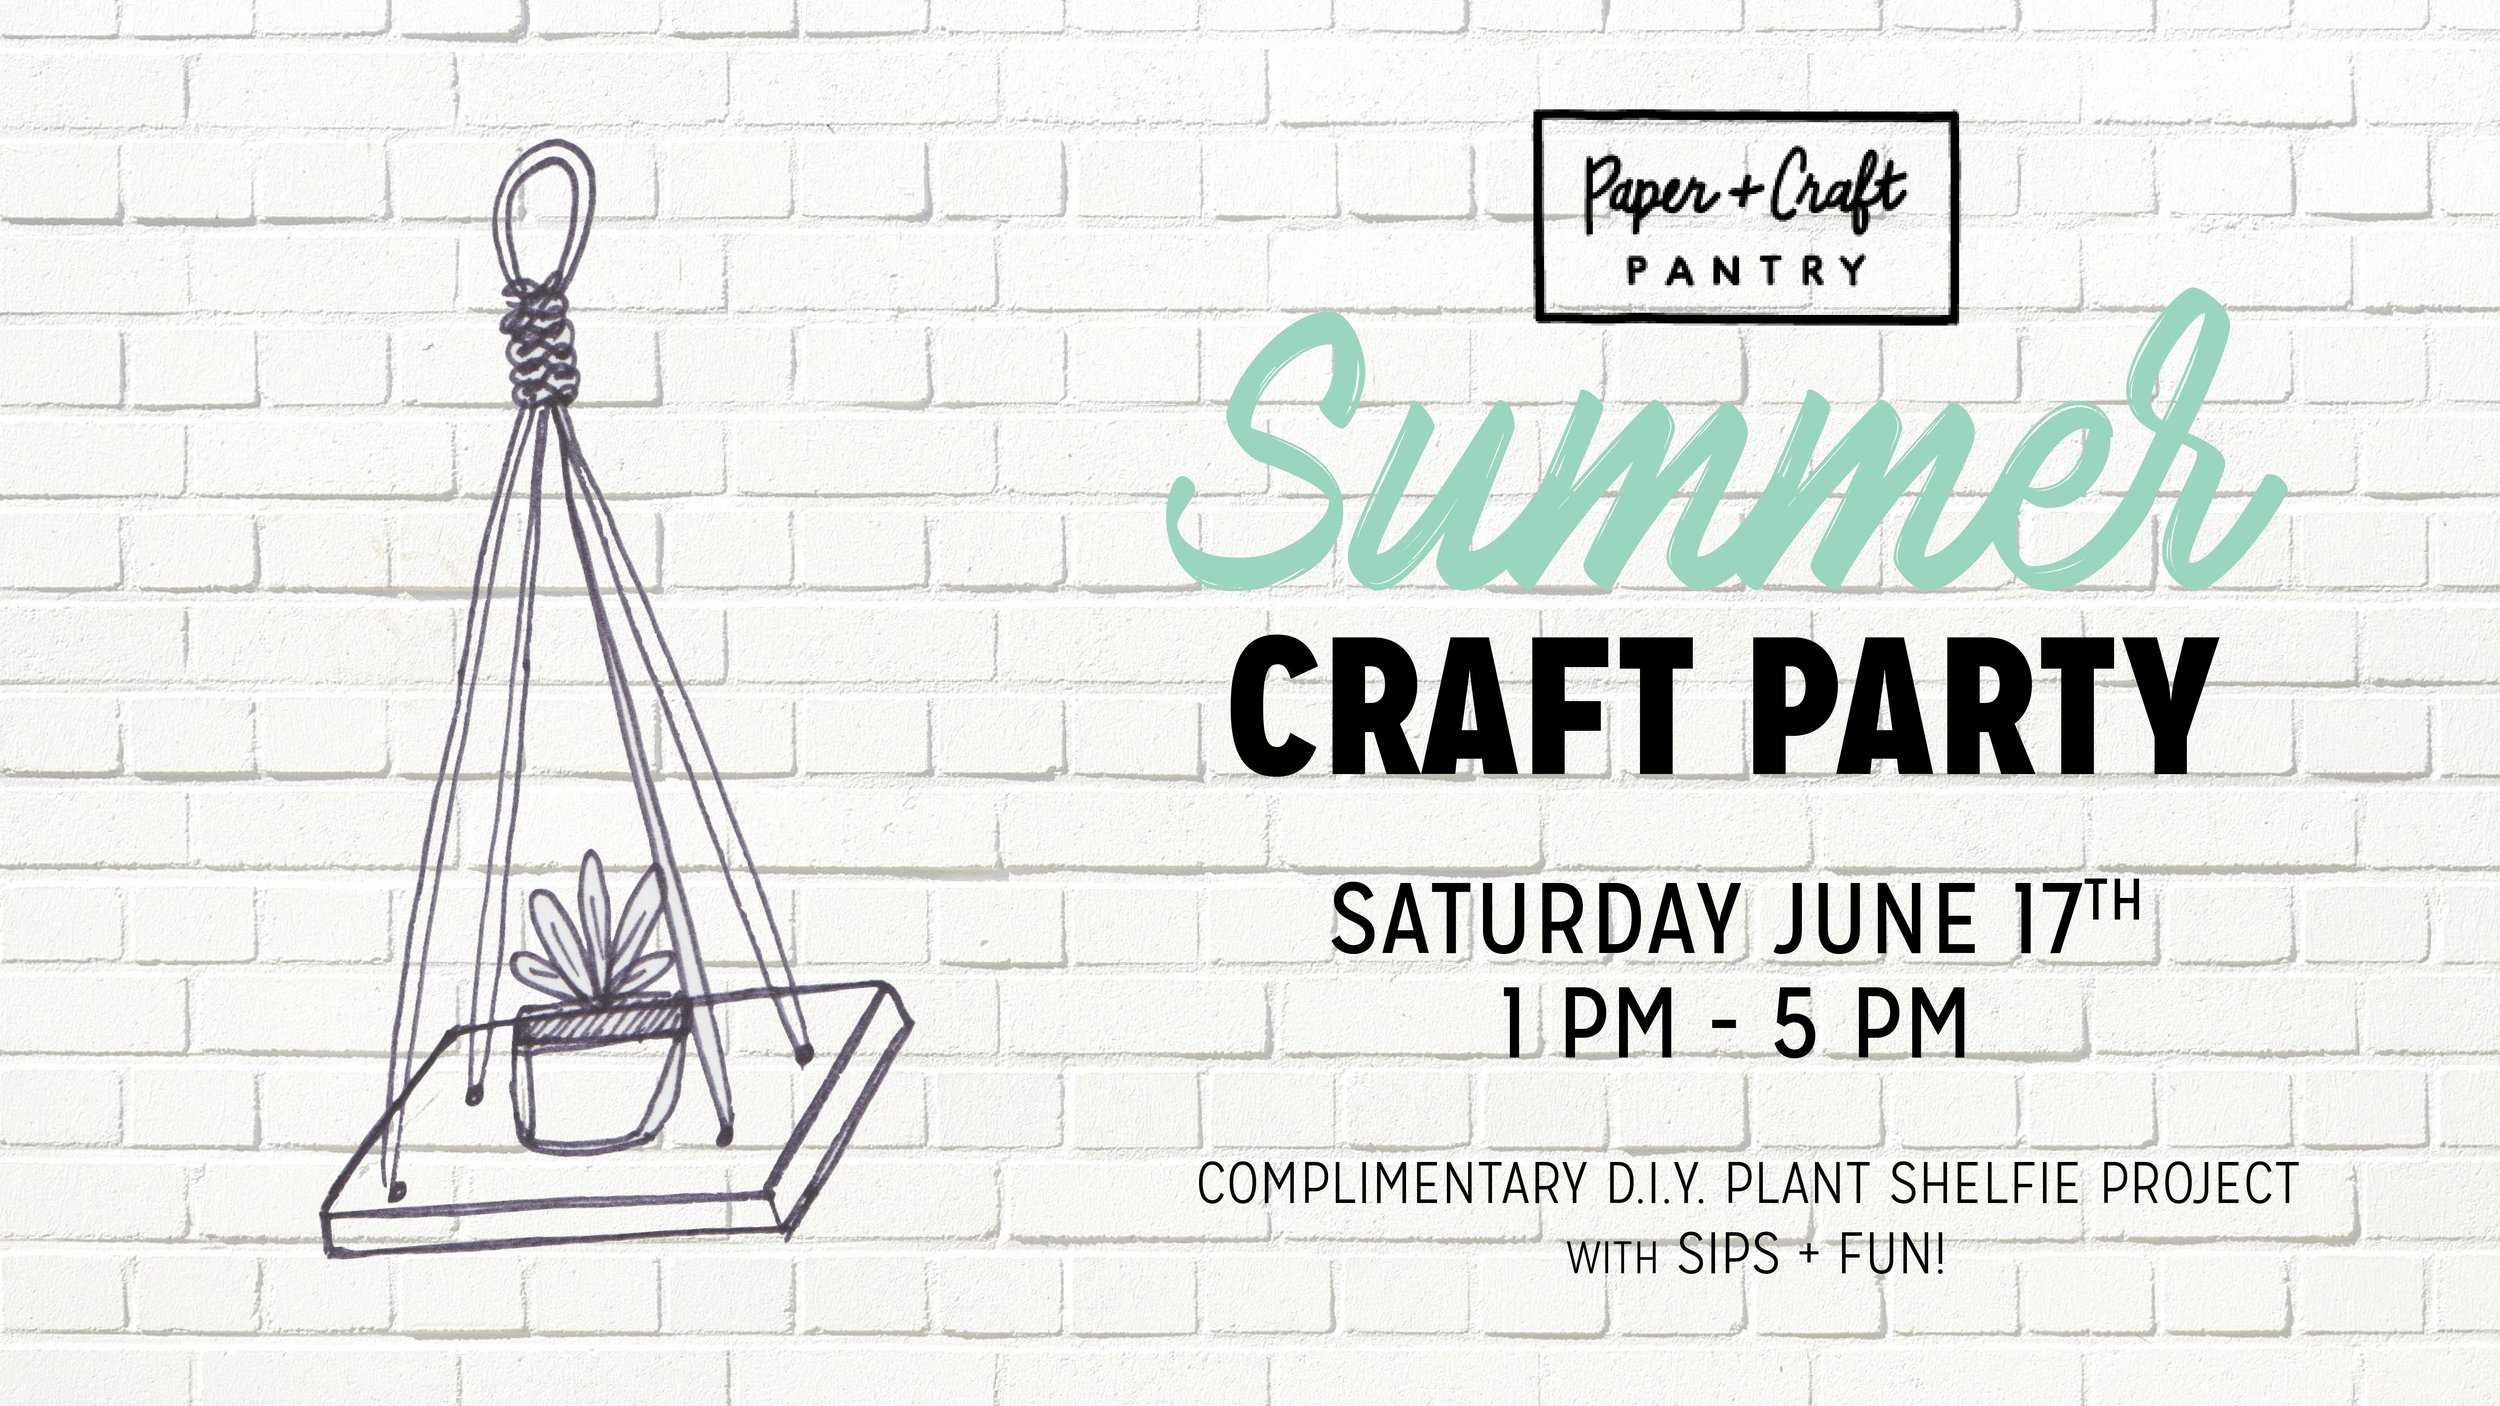 Join us for this Free D.I.Y. Craft Party and Summer Sale in Austin, Texas